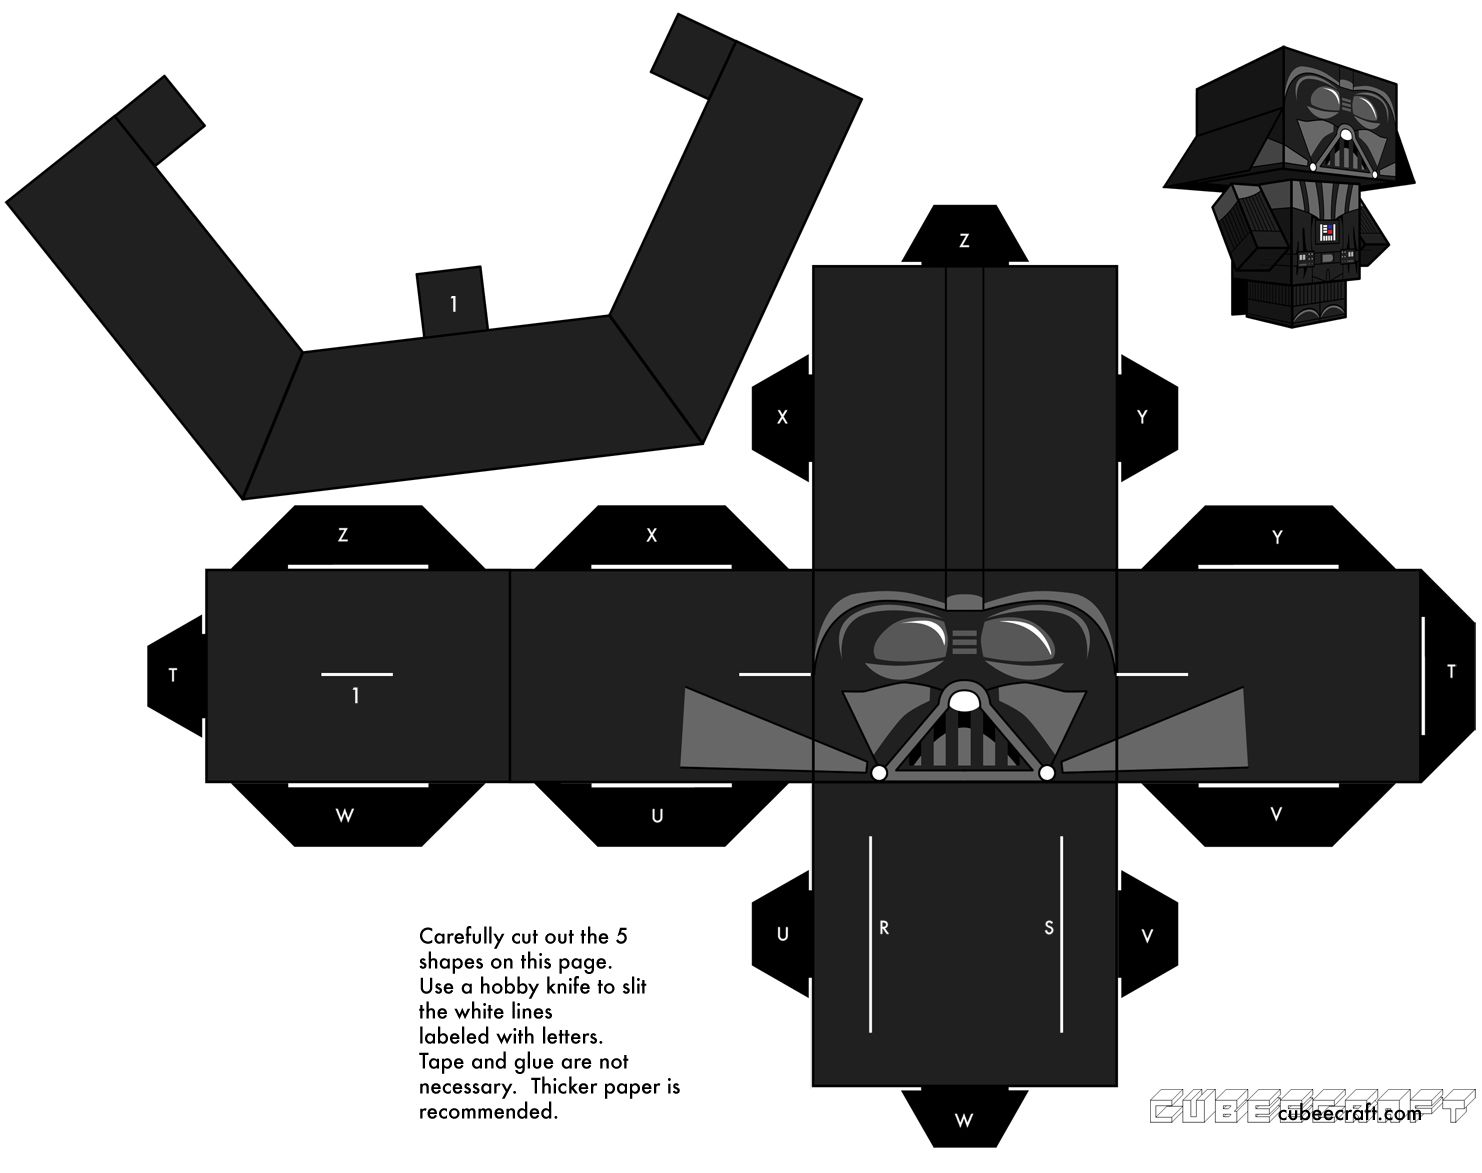 Star Wars Angry Birds Template Printable Image Gallery